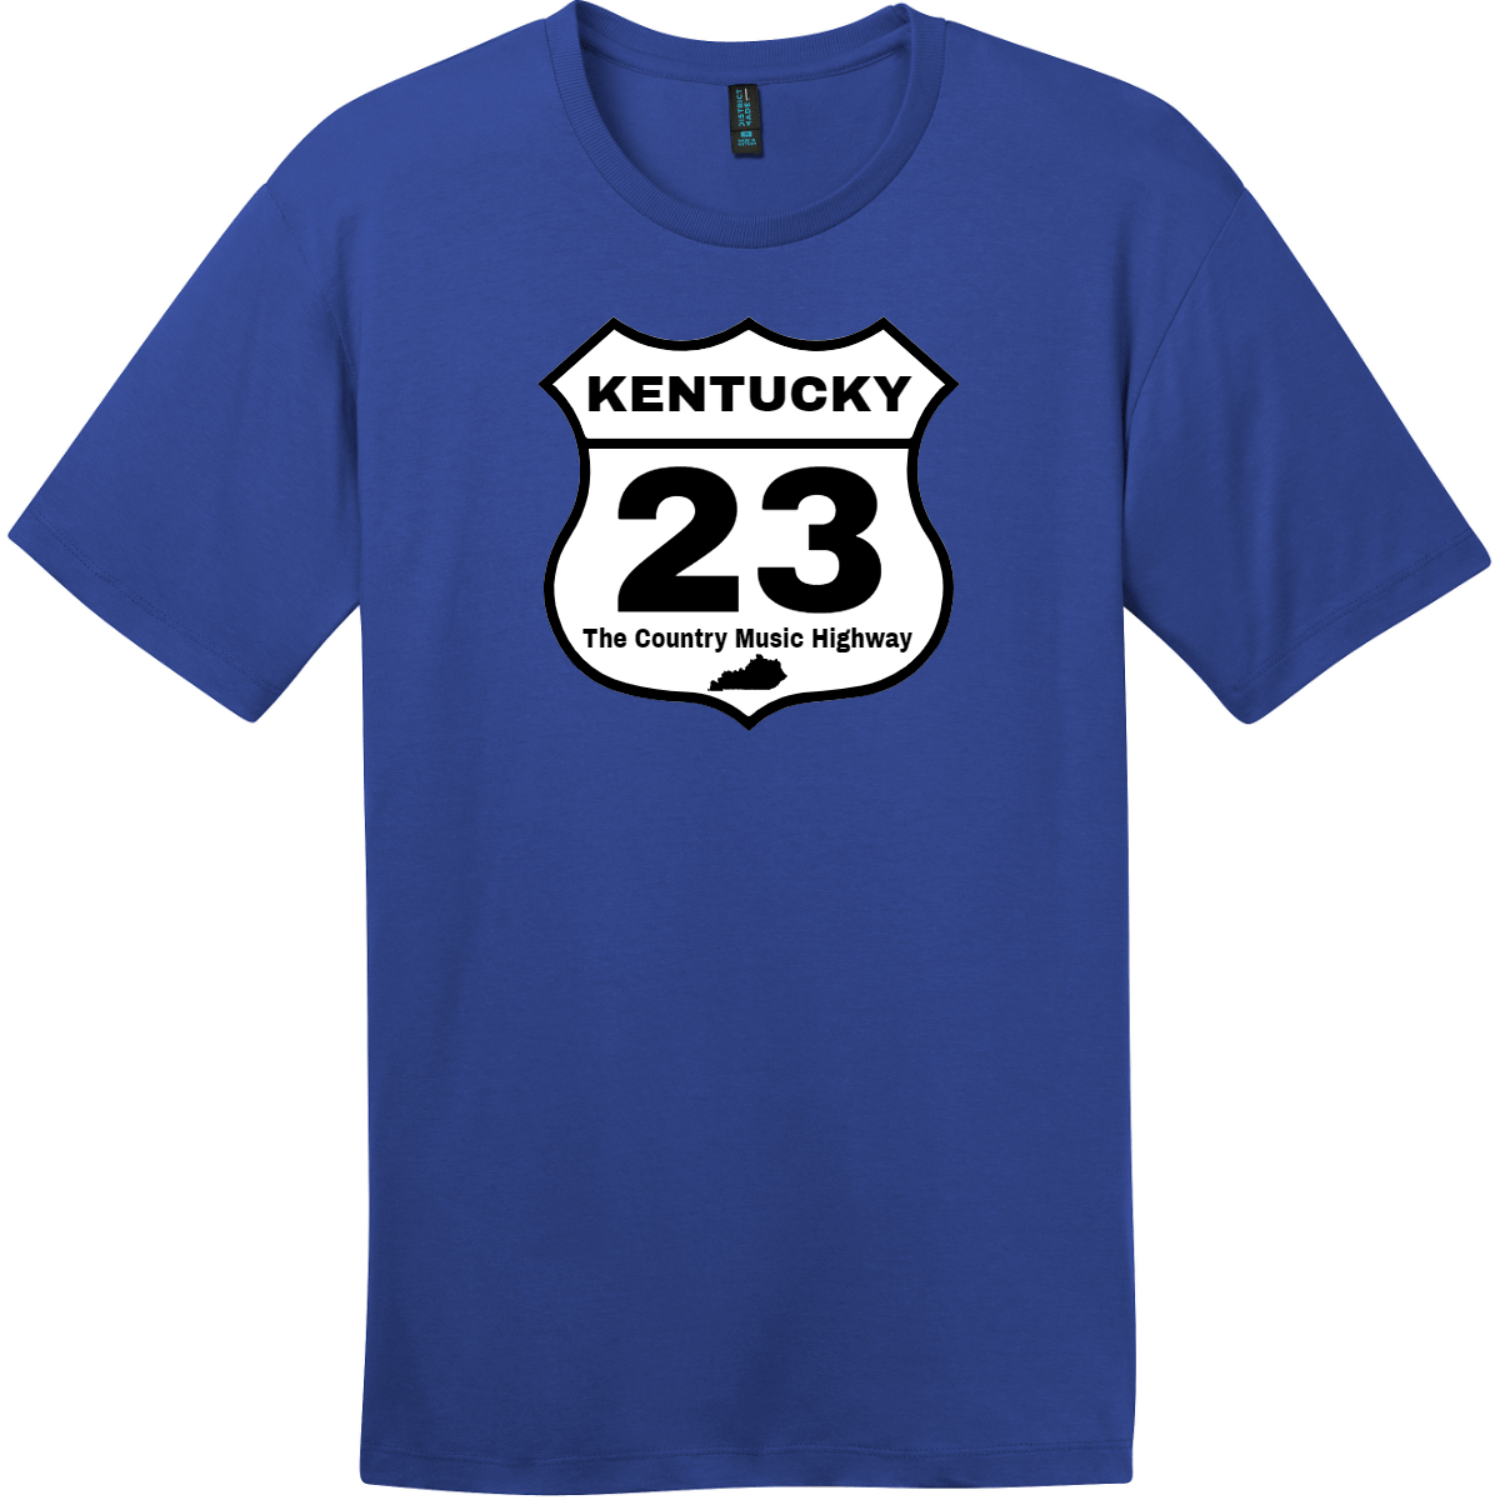 Kentucky 23 Country Music Highway T-Shirt Deep Royal District Perfect Weight Tee DT104